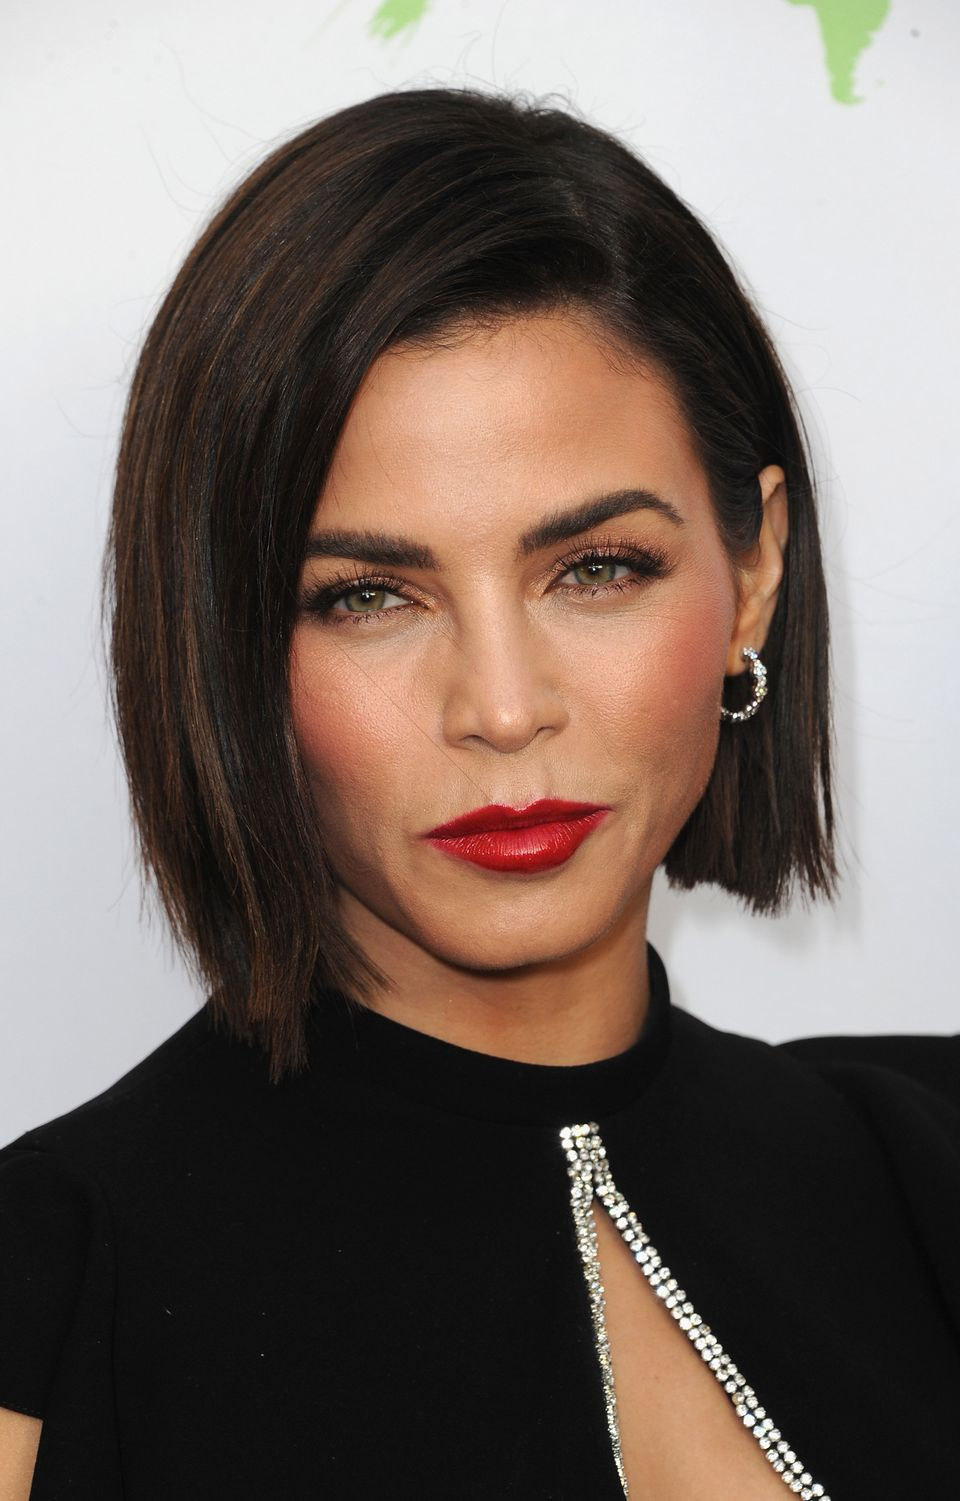 The 50 Best Celebrity Hairstyles To Try Right Now Huffpost Life